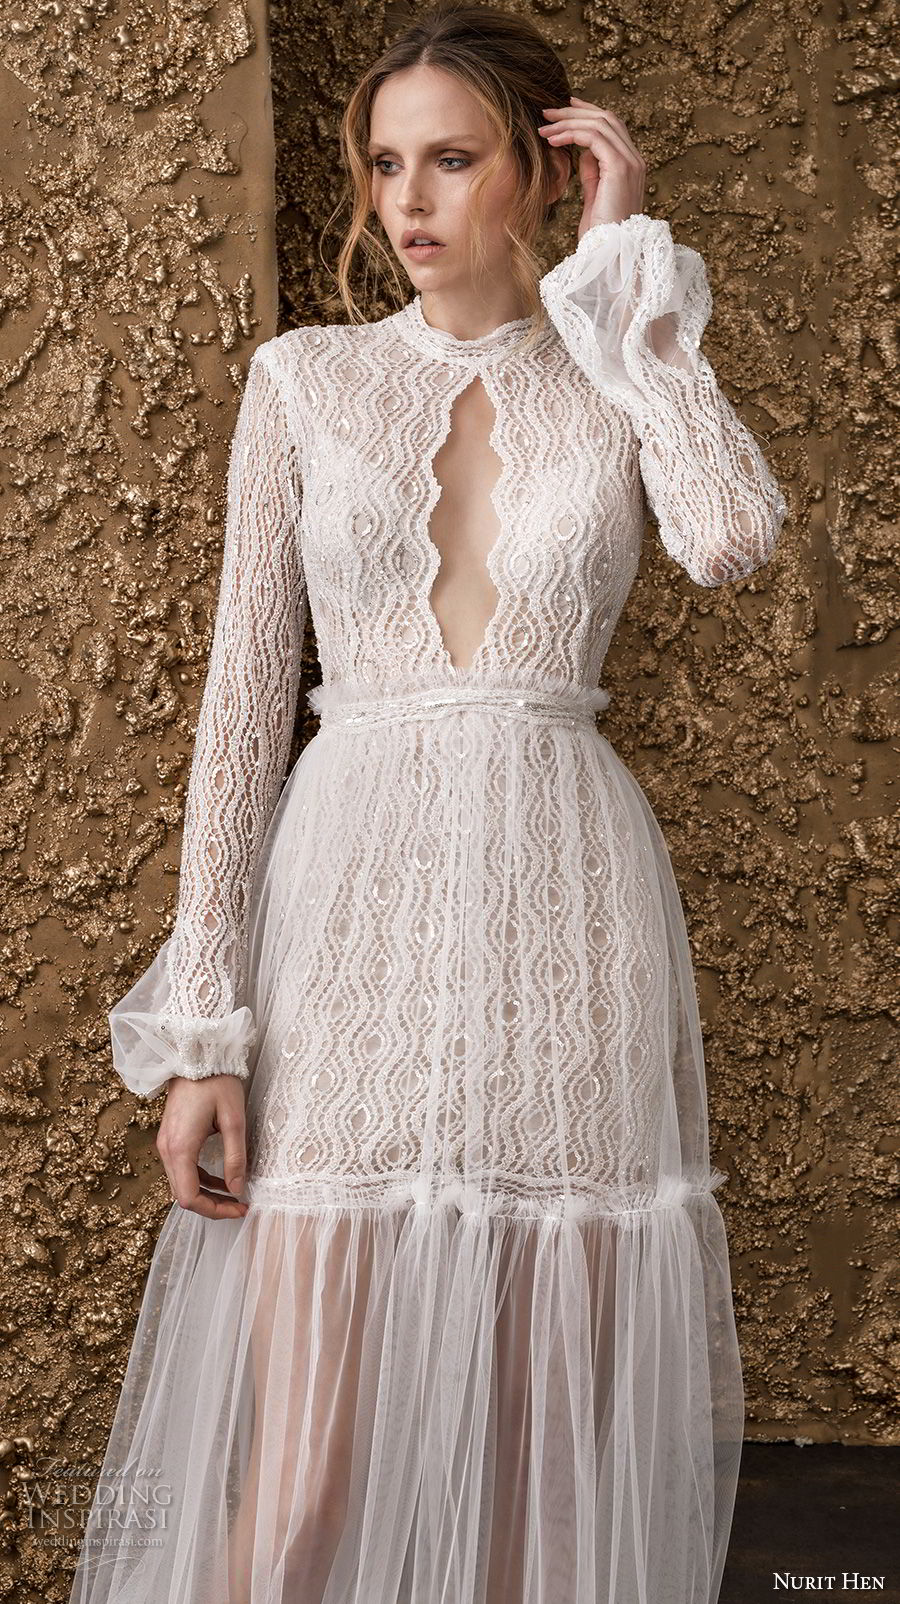 nurit hen 2018 bridal long sleeves high jewel neck keyhole neckline full embellishment bohemian soft a  line wedding dress covered lace back sweep train (9) zv